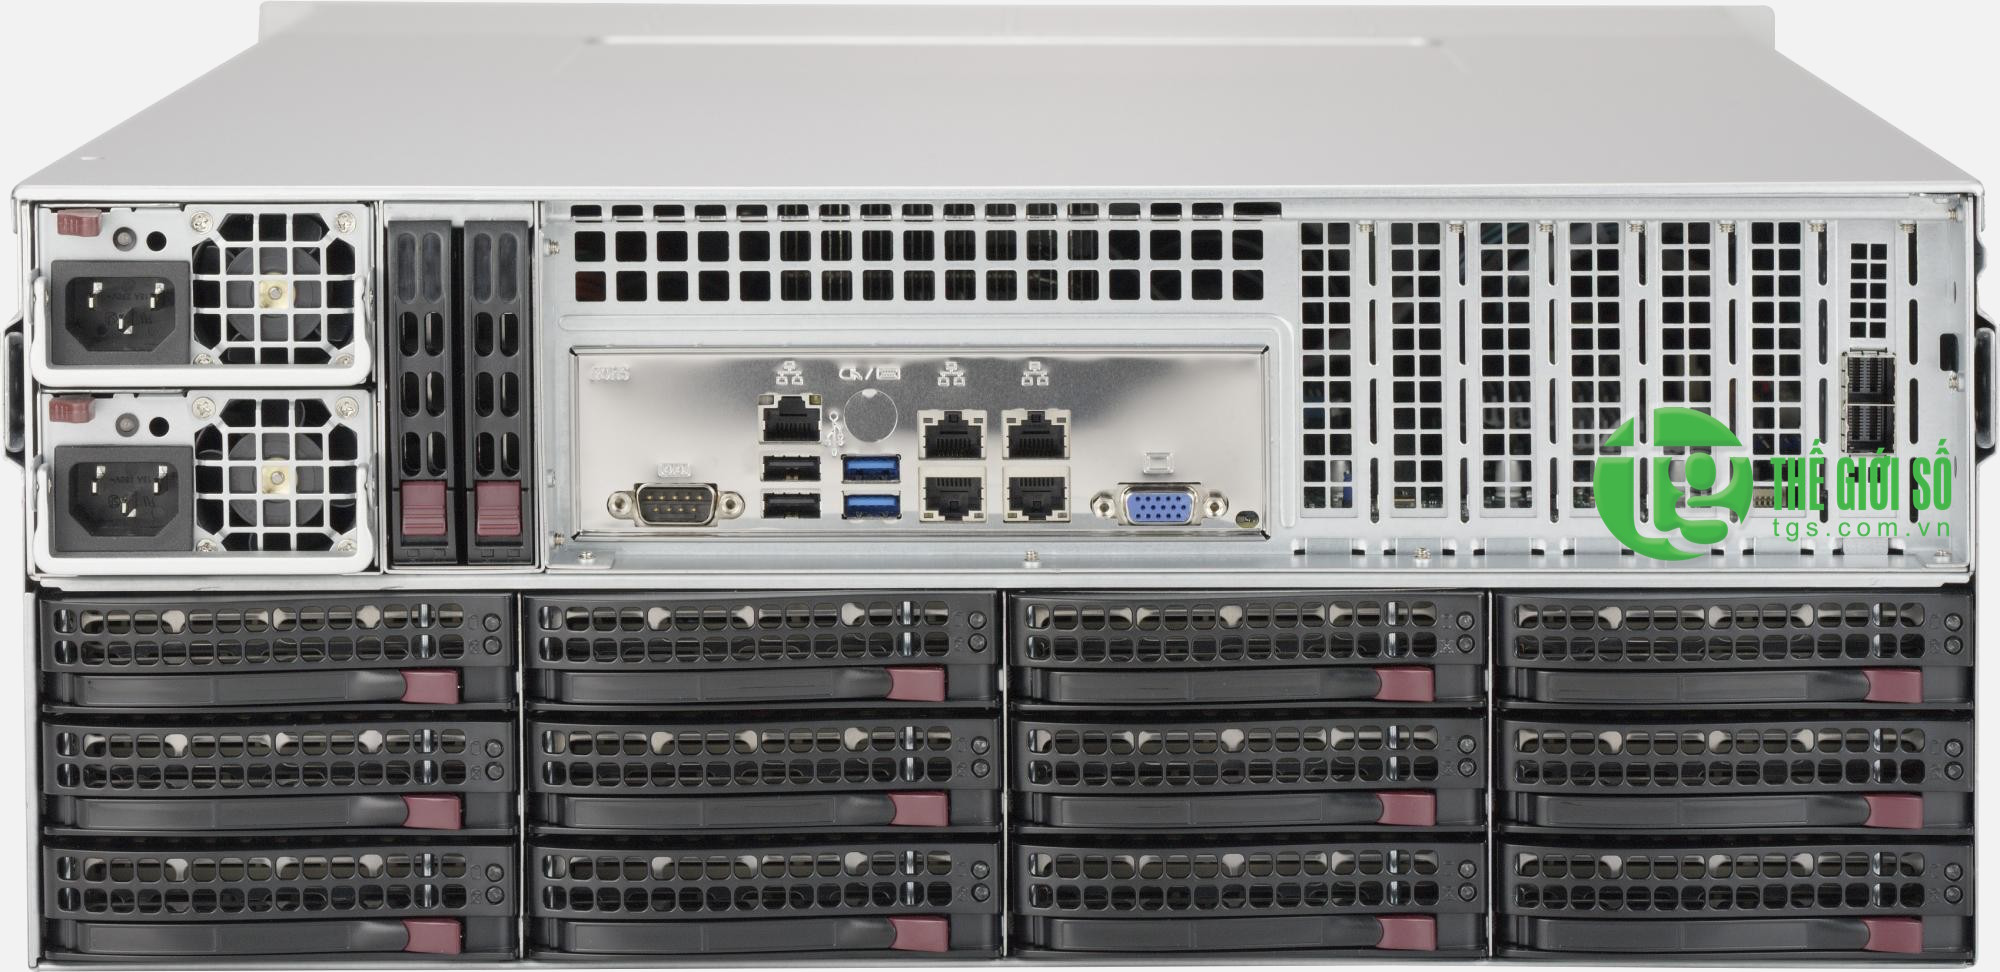 Supermicro SuperStorage Server SSG-6048R-E1CR36L